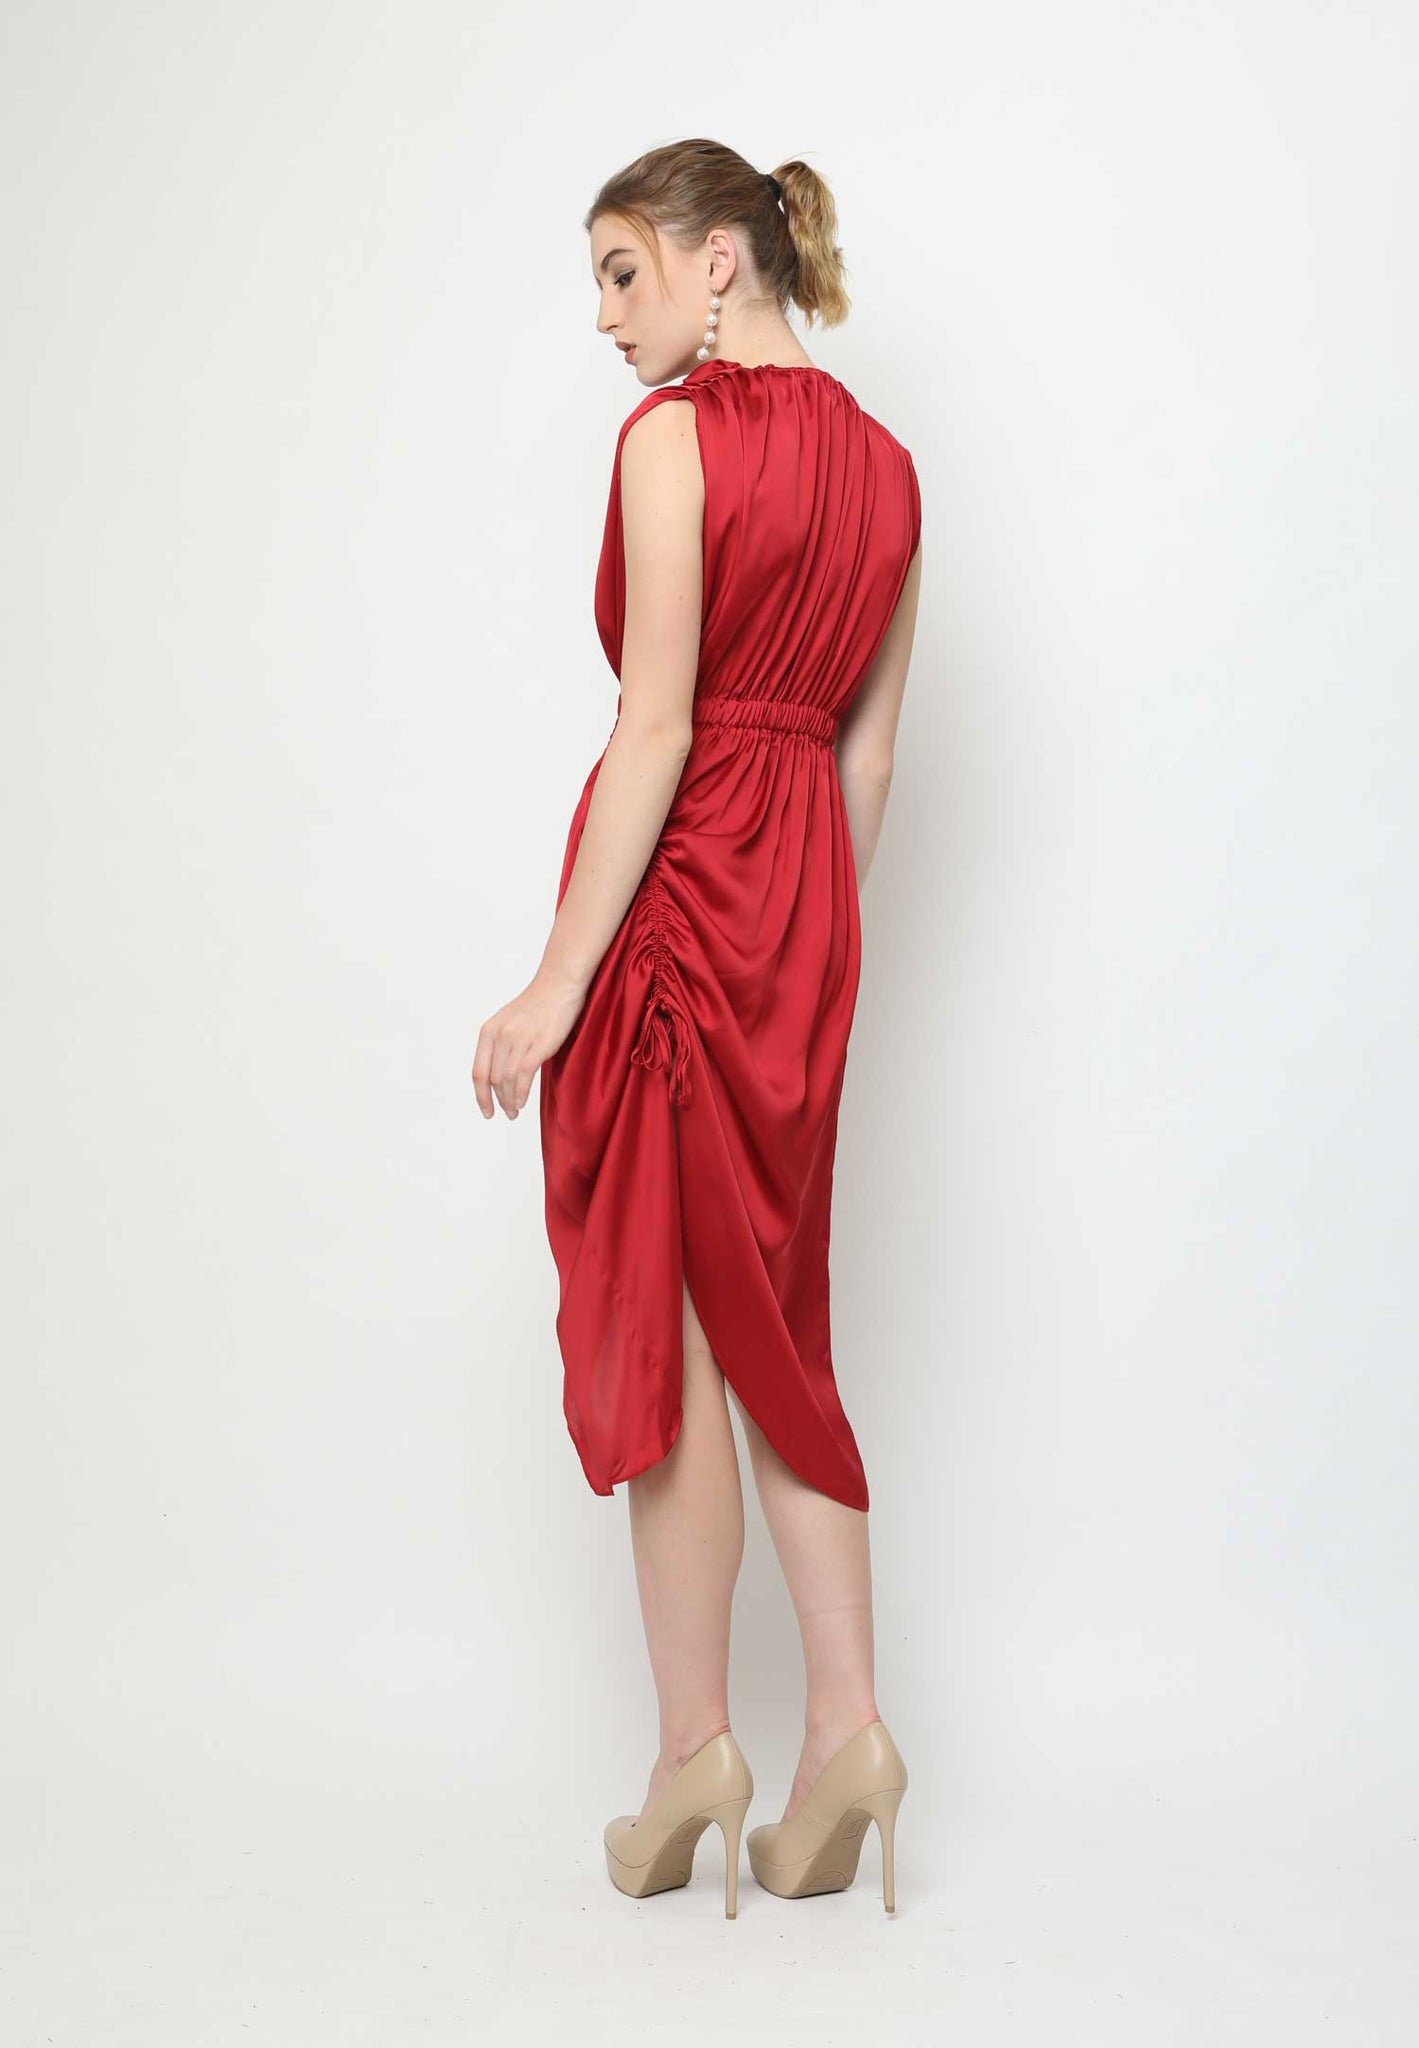 Ava. Arched Dress - Red